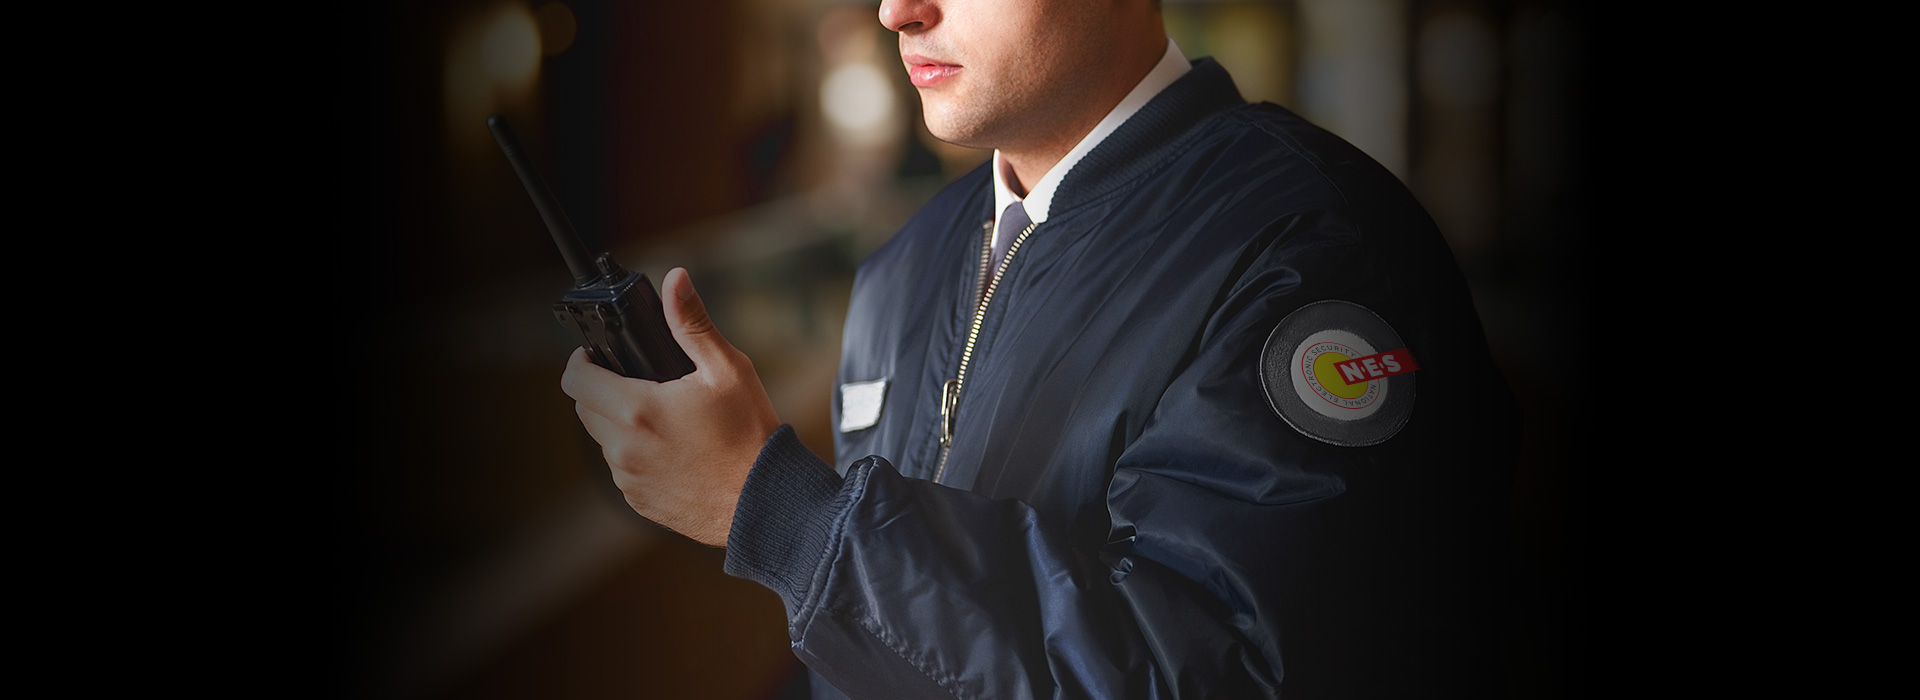 Our highly-trained security professionals protecting you around the clock